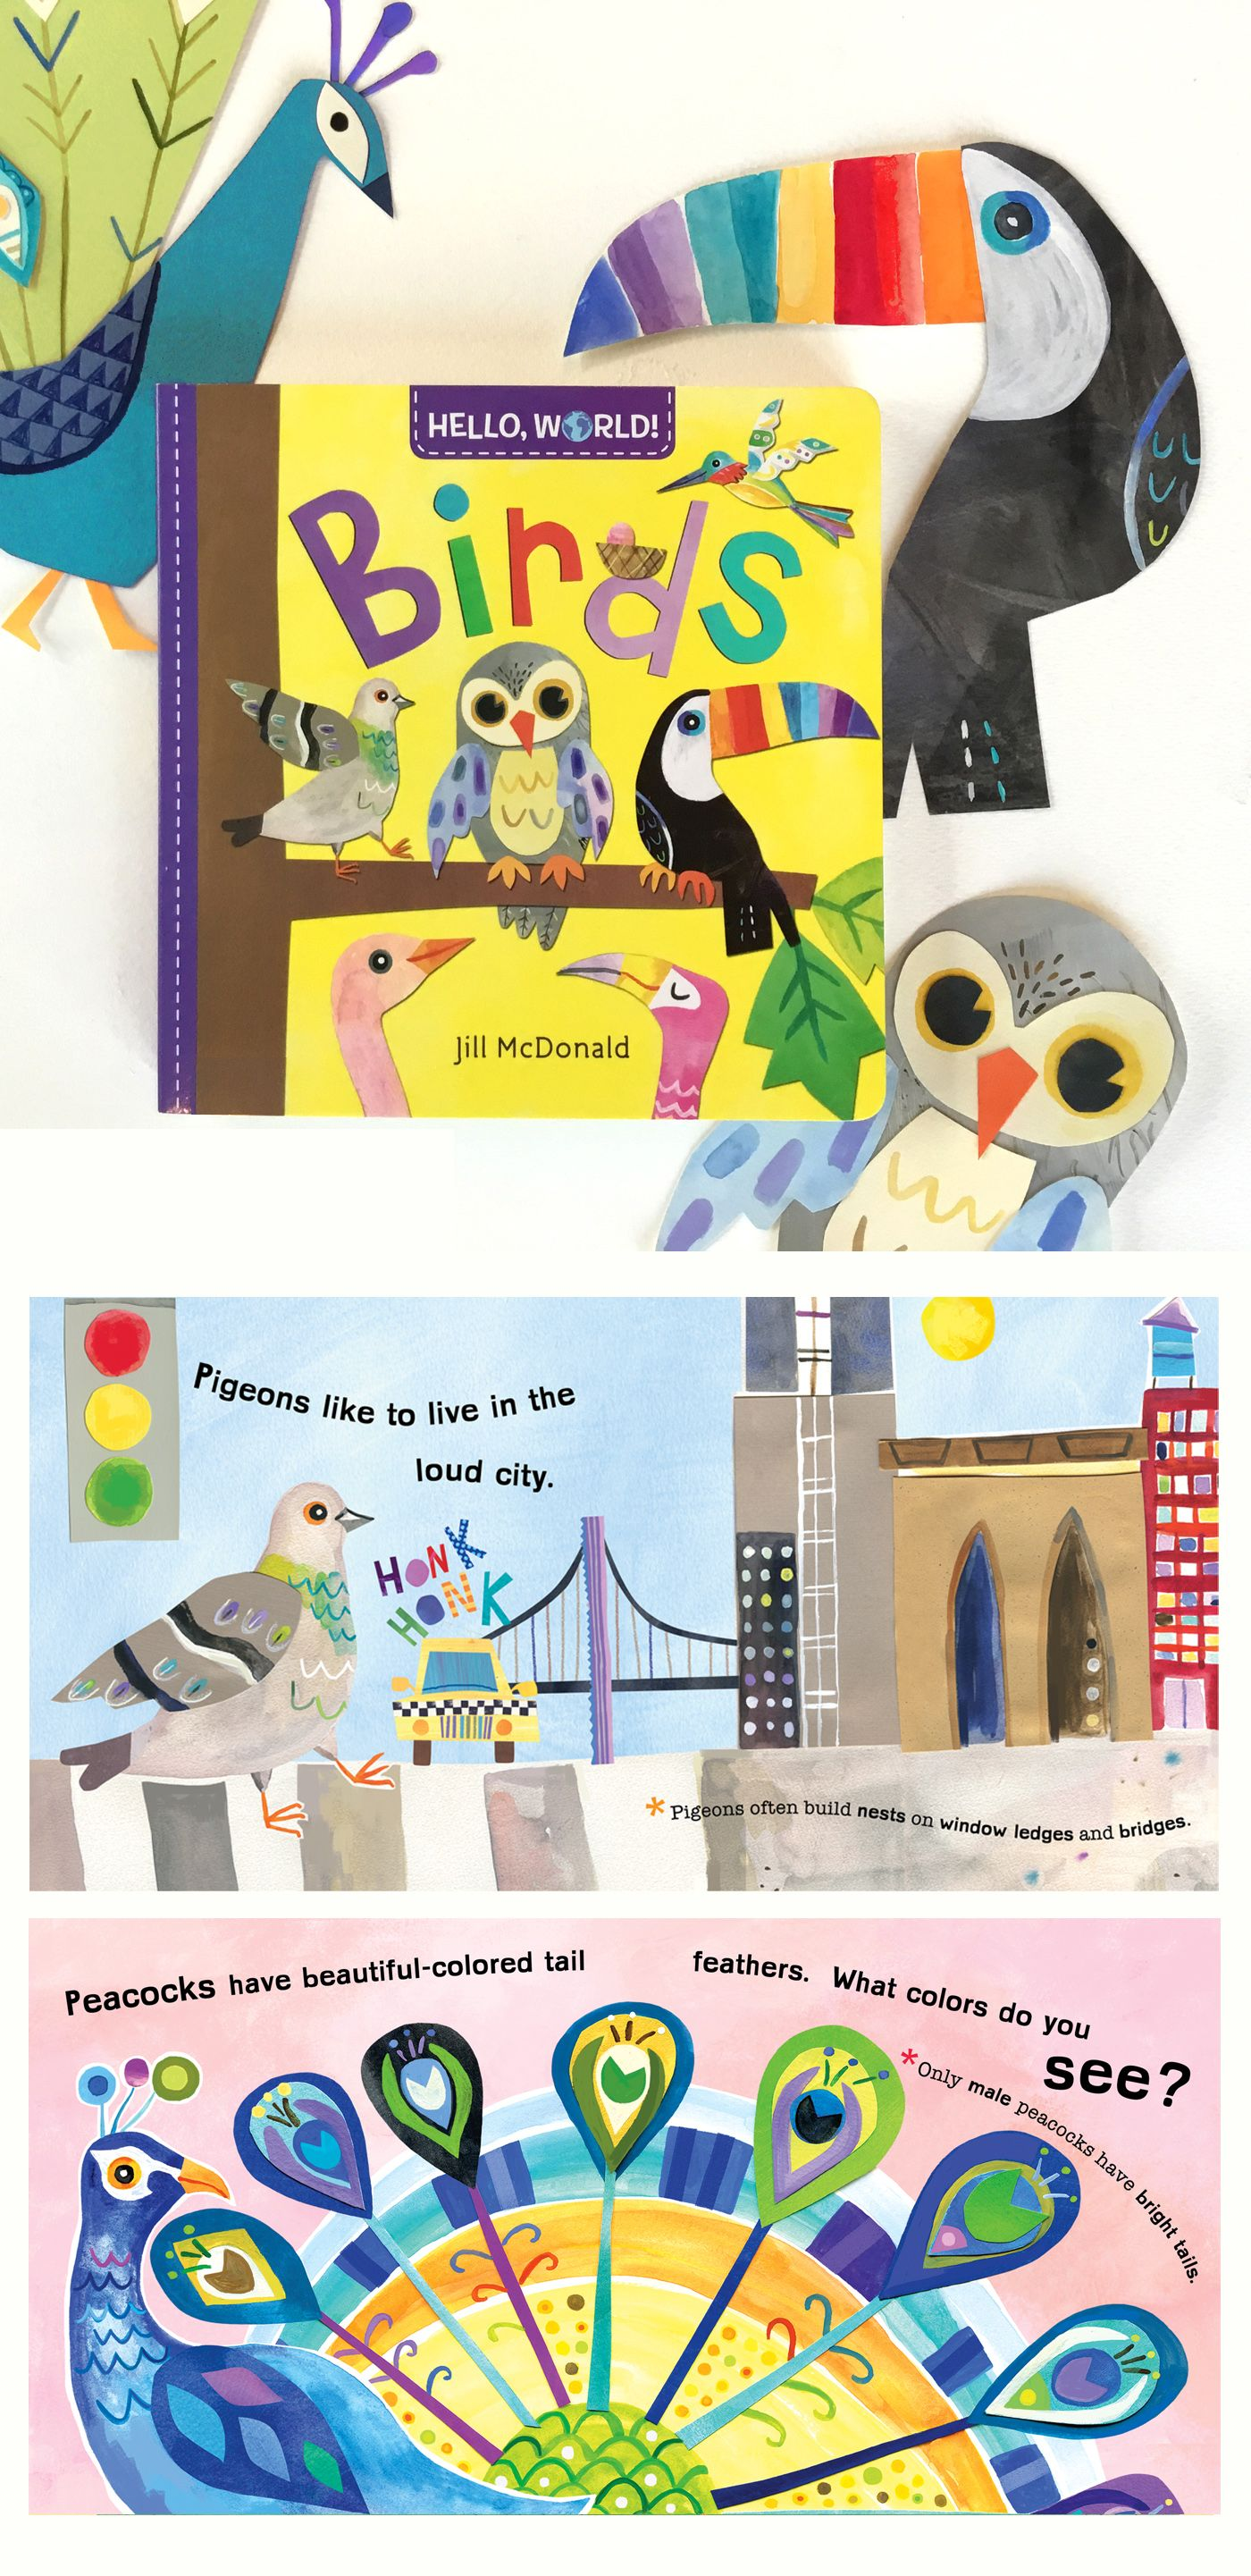 Birds part of the hello world board book series by jill